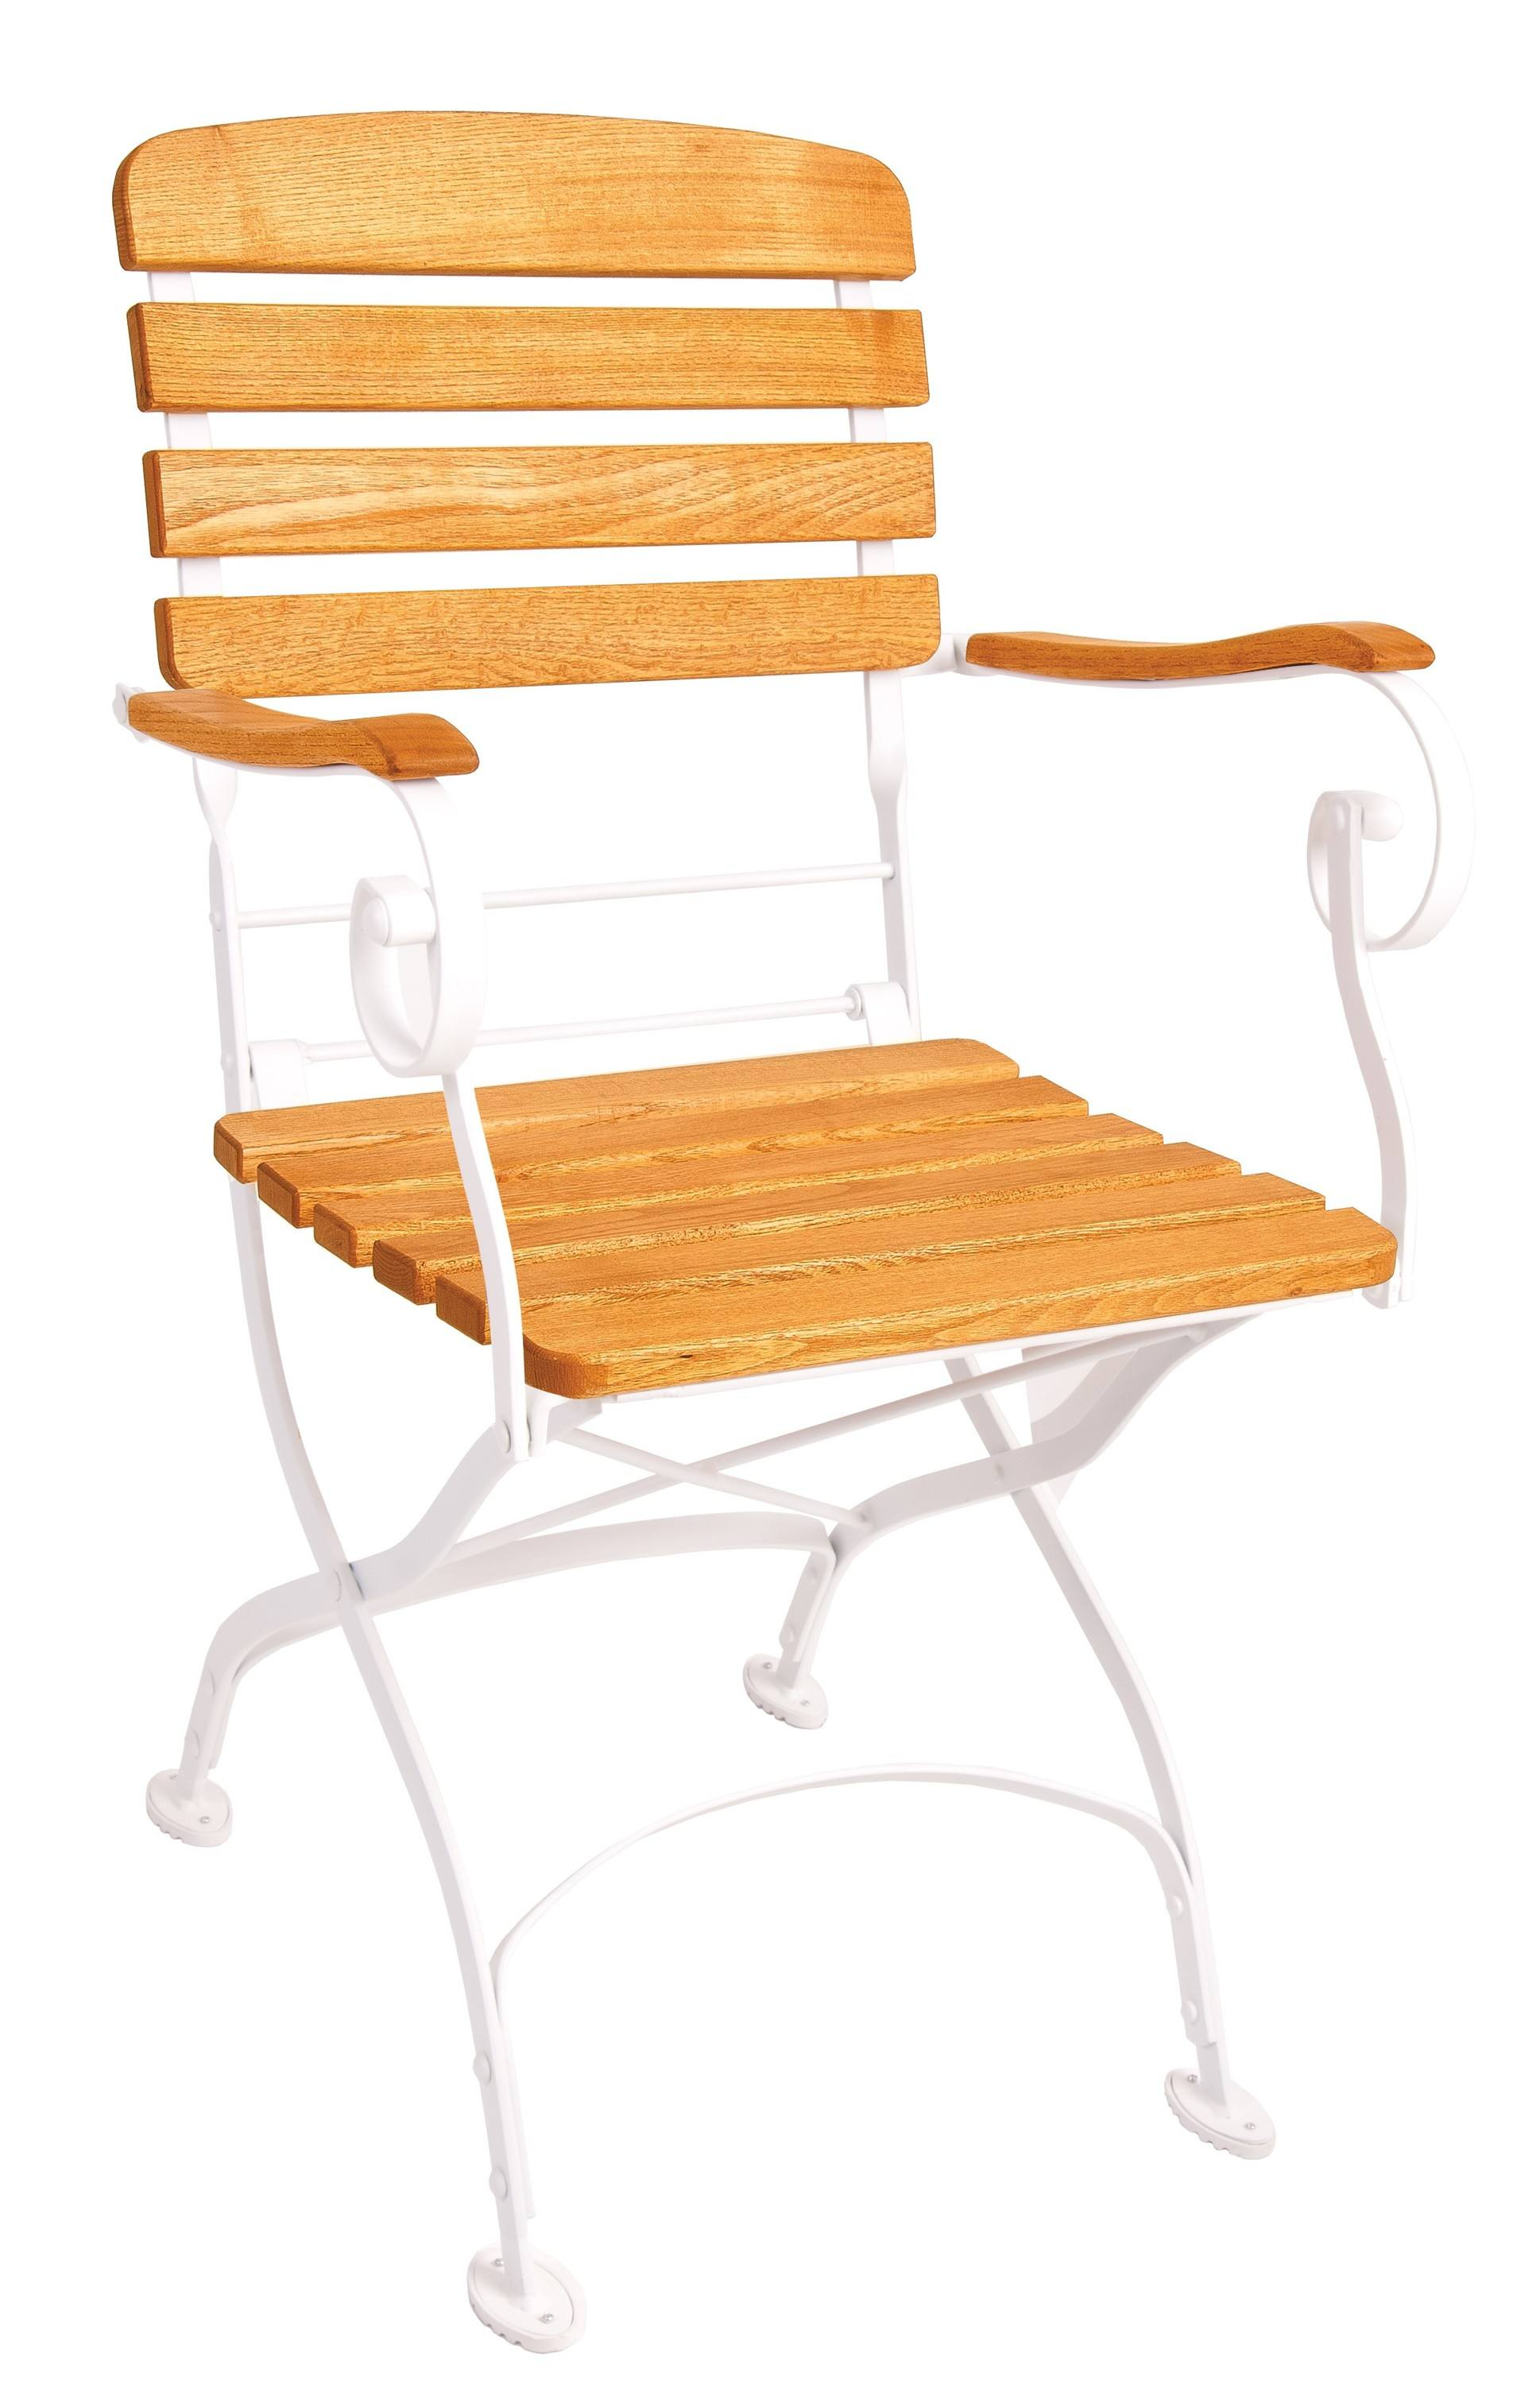 <p>Outdoor Furniture – Metal & Wooden Dining Collection – Creta Armchair.</p> <p> </p> <p>Creta Furniture – Armchair with honey coloured hardwood seat armrests and backrest with gently curved metal shaped frame.</p> <p> </p> <p>Ideally suited for either indoor or outdoor relaxed dining location in pubs or restaurants or more intimate café bistro al fresco area or for events requiring easy to fold and store furniture.</p>